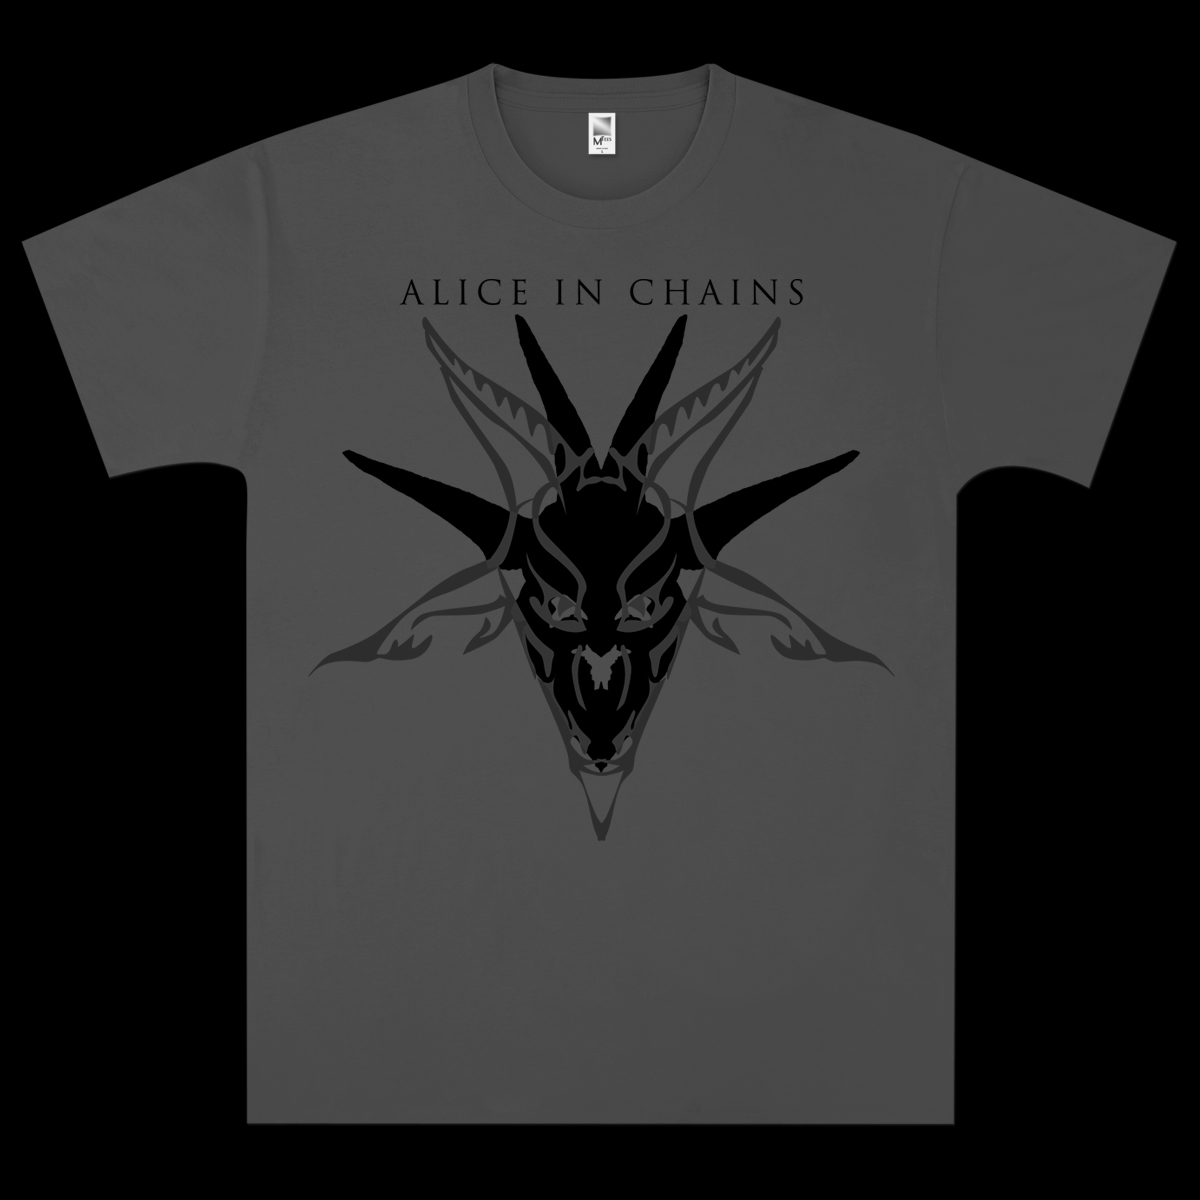 Alice In Chains Black Skull T-Shirt